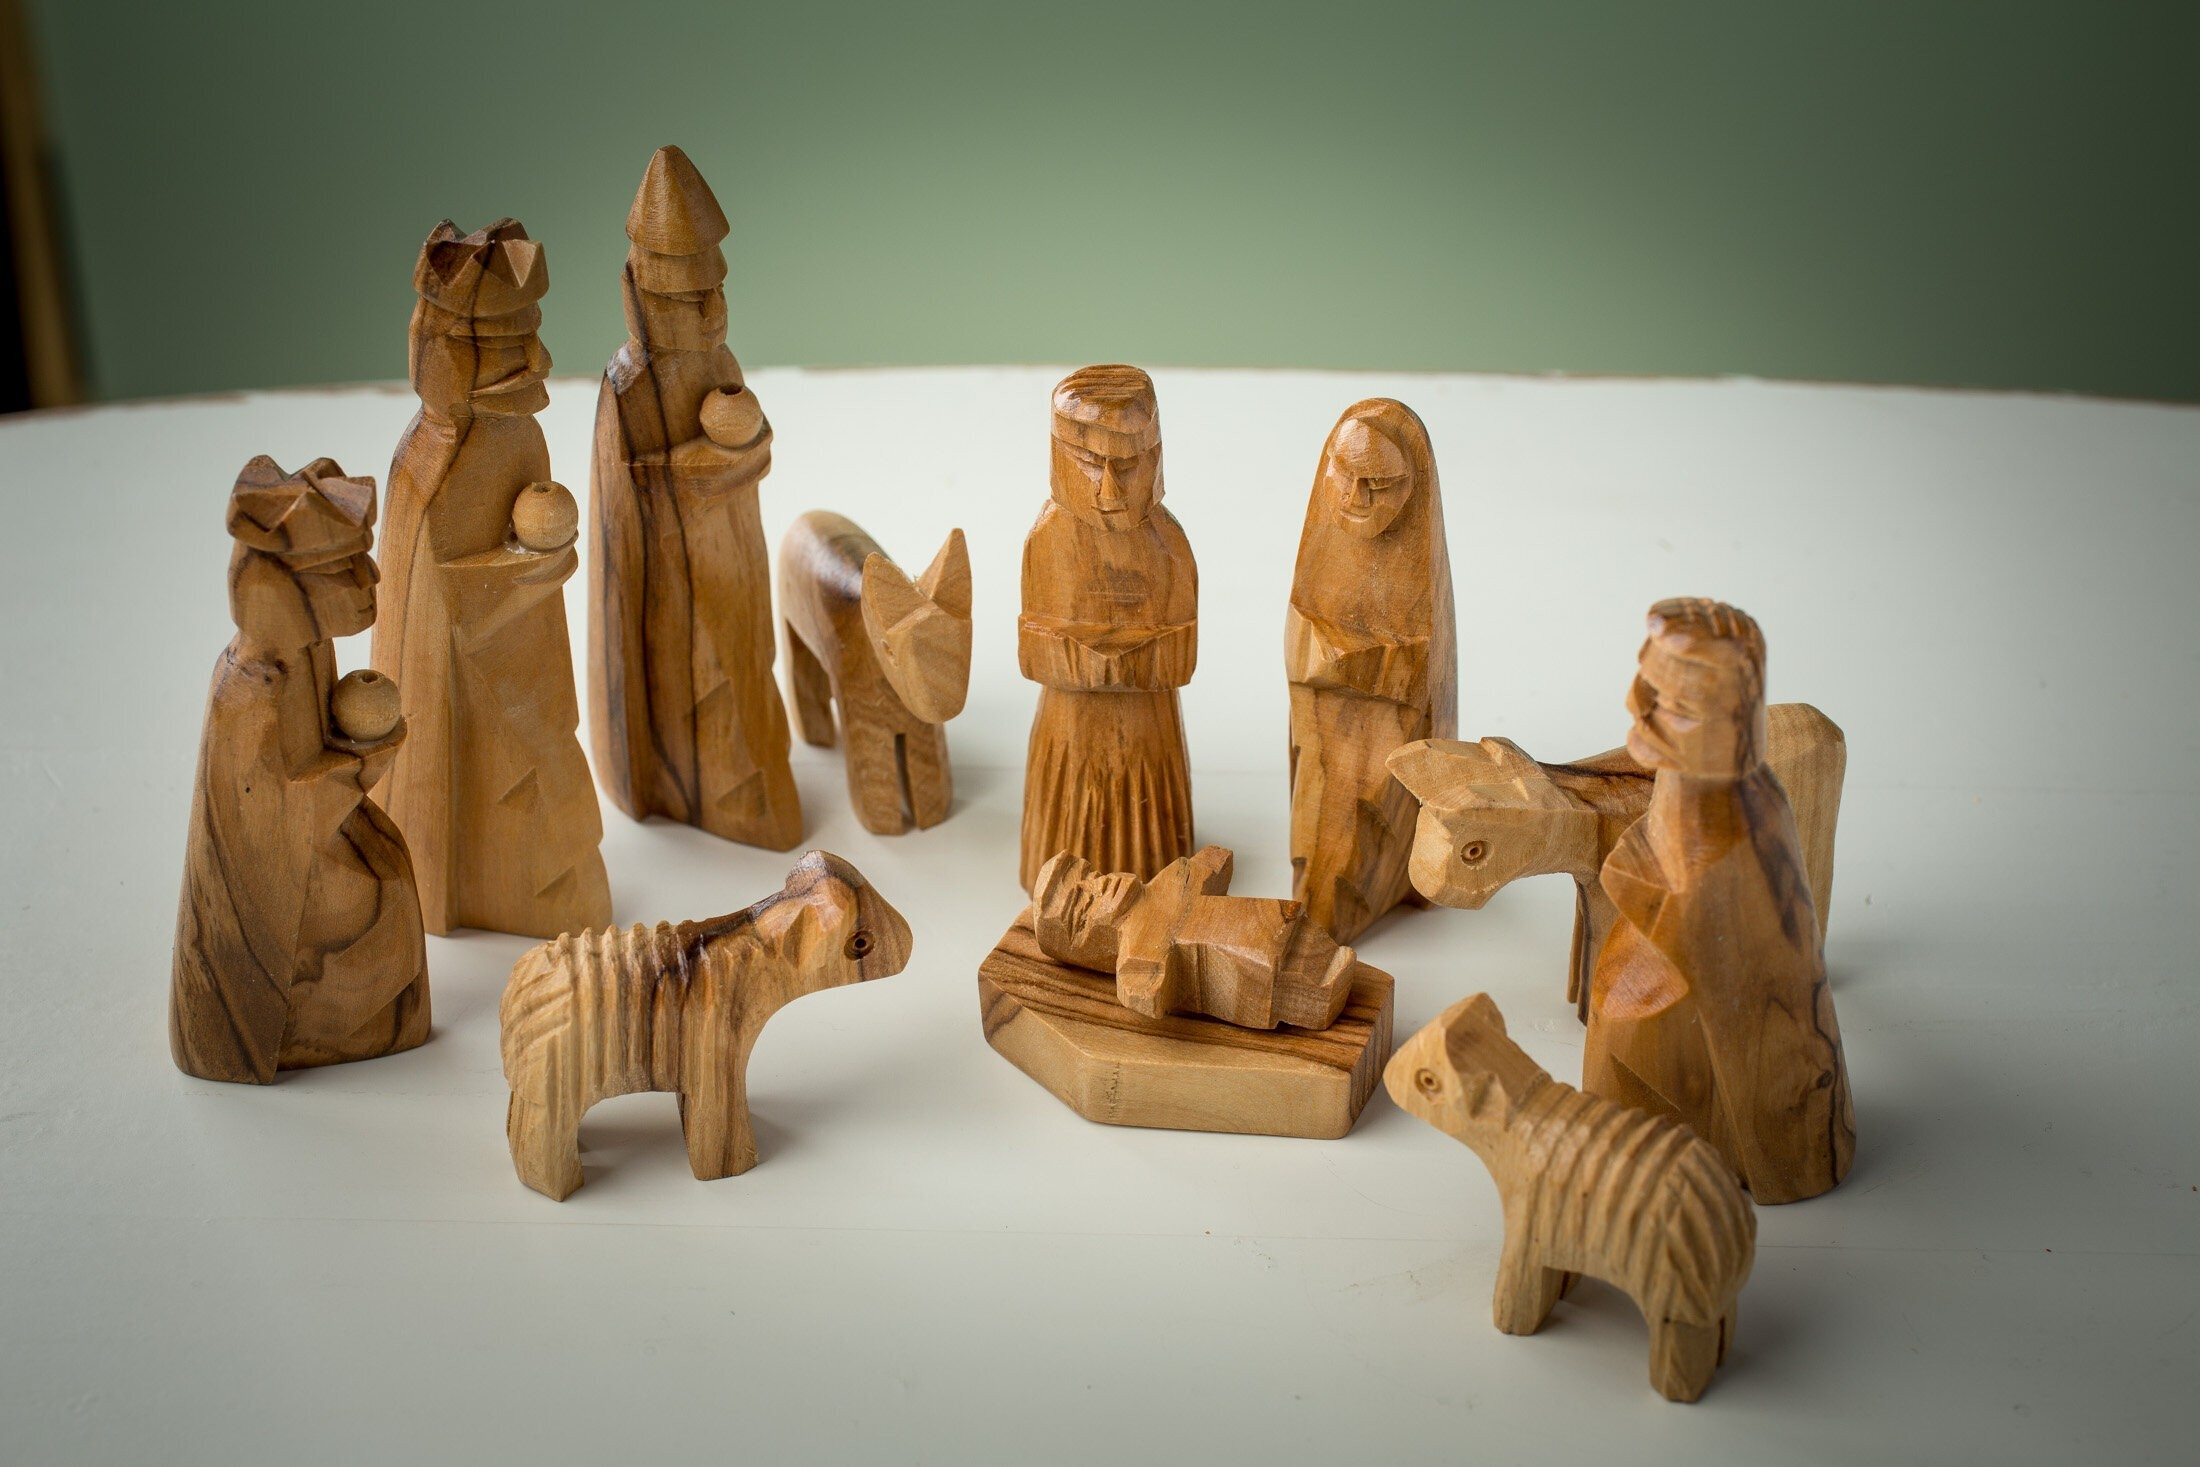 How To Choose A Nativity Set